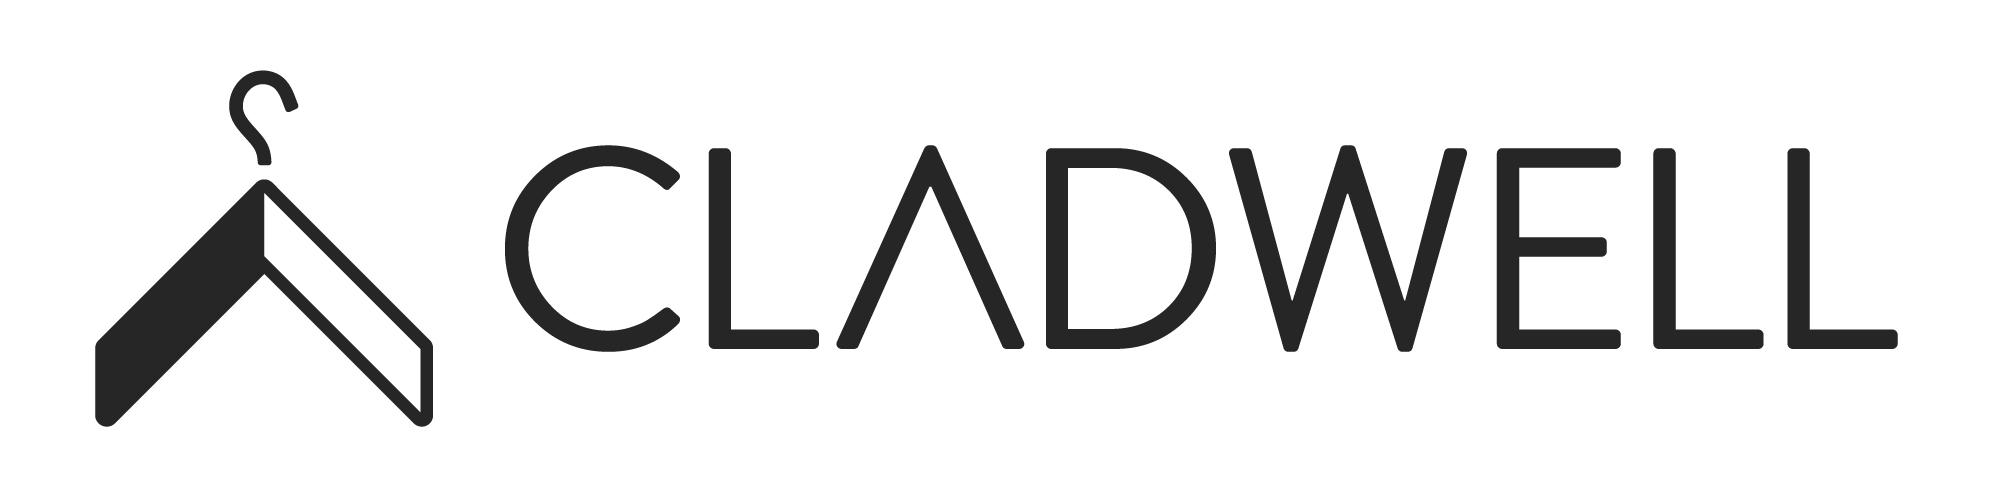 Cladwell-Logo-TakeTheTime.png